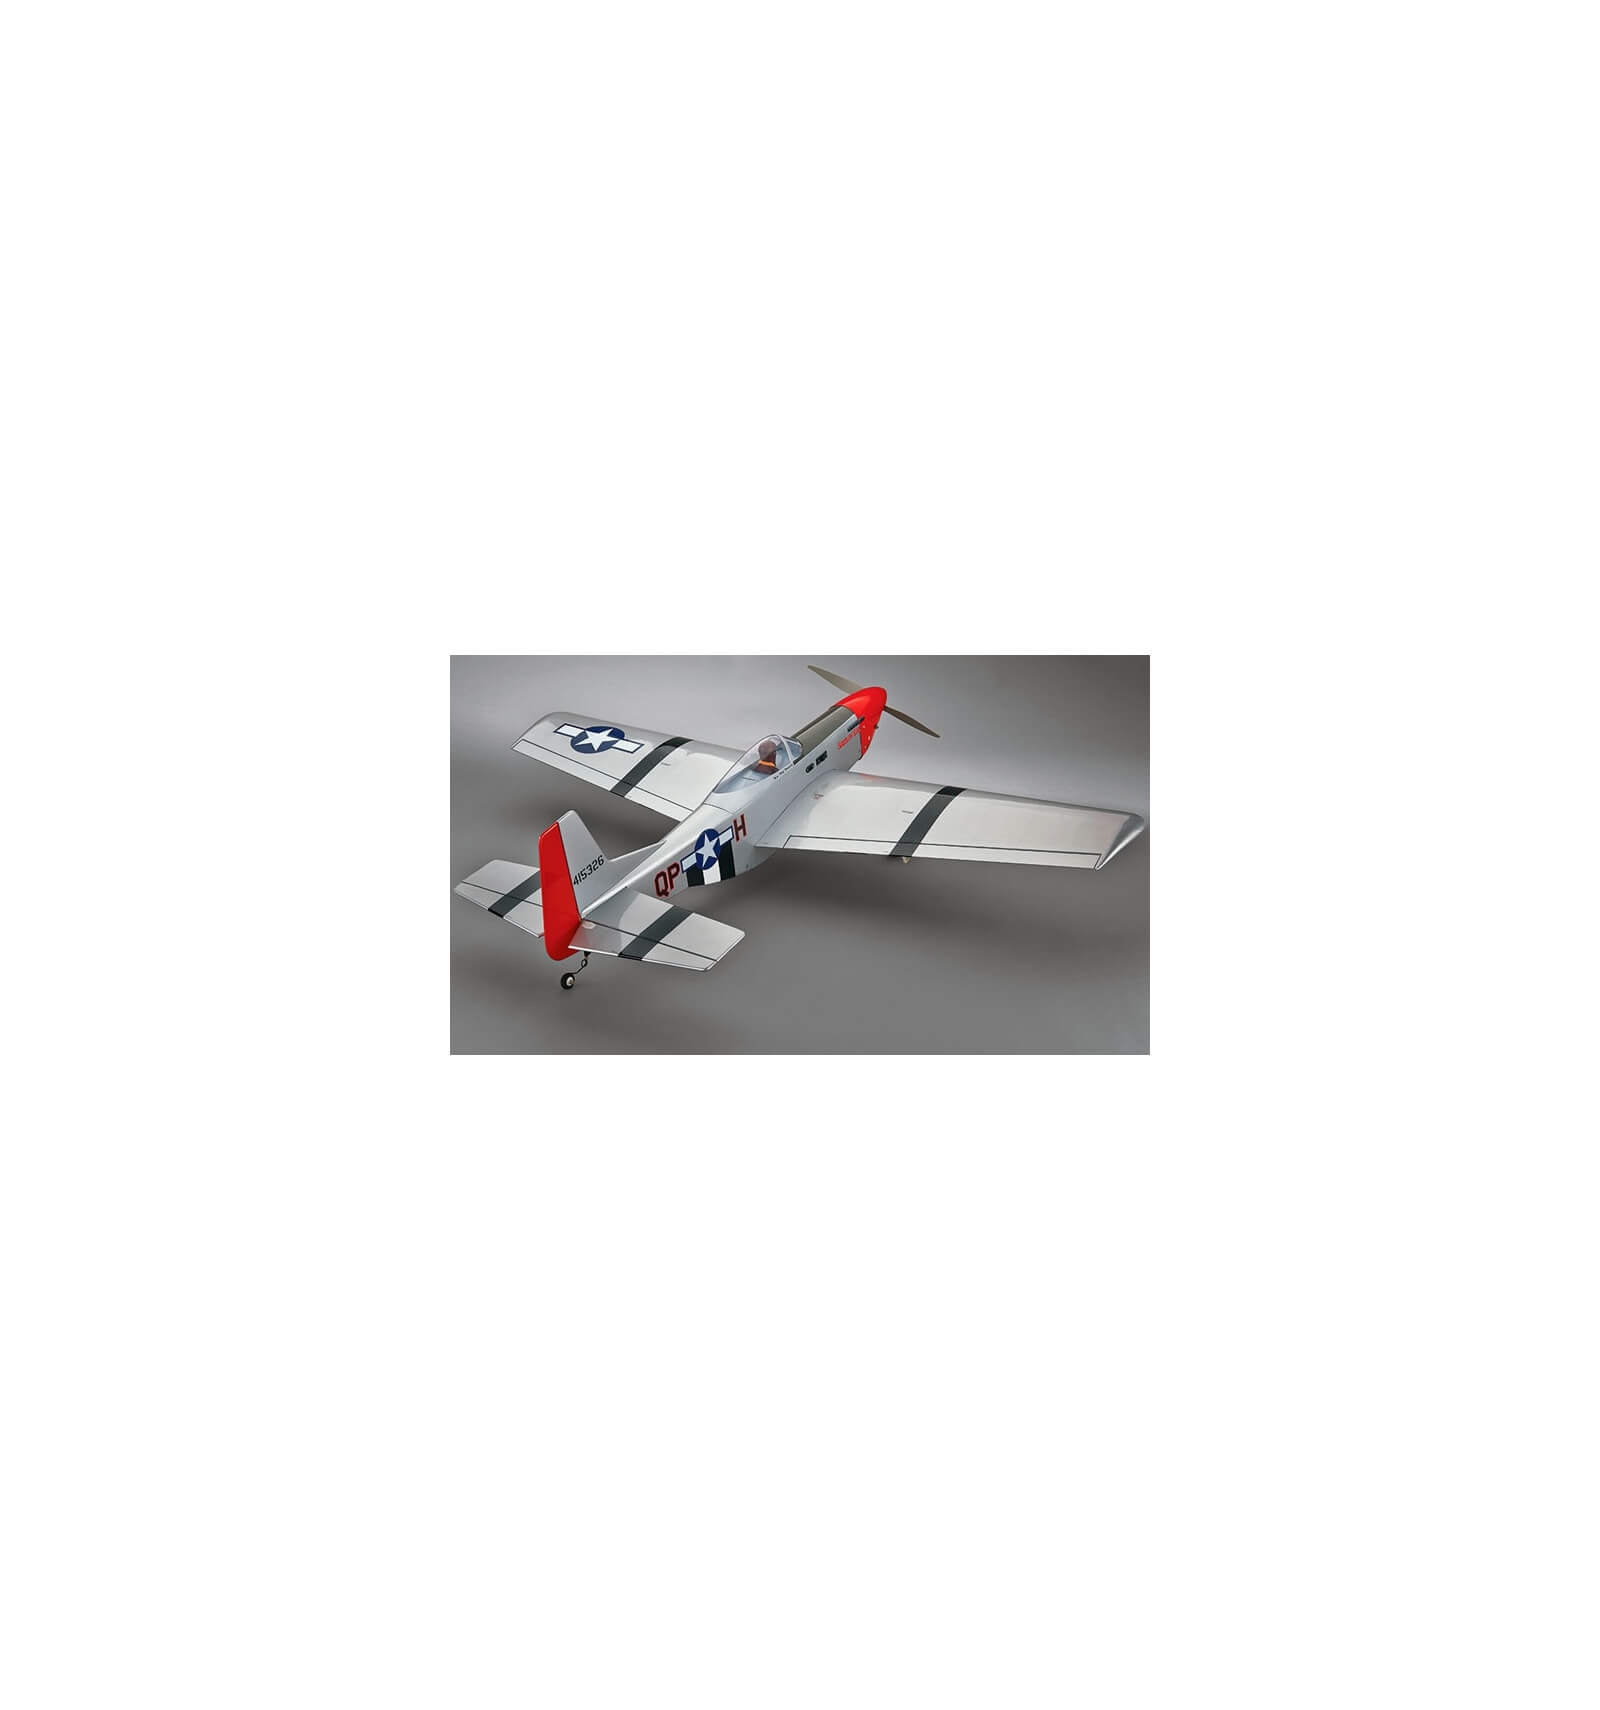 greatplanes com with 5174 Greatplanes P 51 Mustang Sport Fighter 46 1320mm on Great Planes Giant Big Stik Xl 55 61ep Arf Video besides 5174 Greatplanes P 51 Mustang Sport Fighter 46 1320mm likewise 20138 Gpma0118 Greatplanes Pt40x005fx001a Mkii 35 46 Trainer Kit Only English Manual further Wti0001p additionally Ep Arf P 84398html.